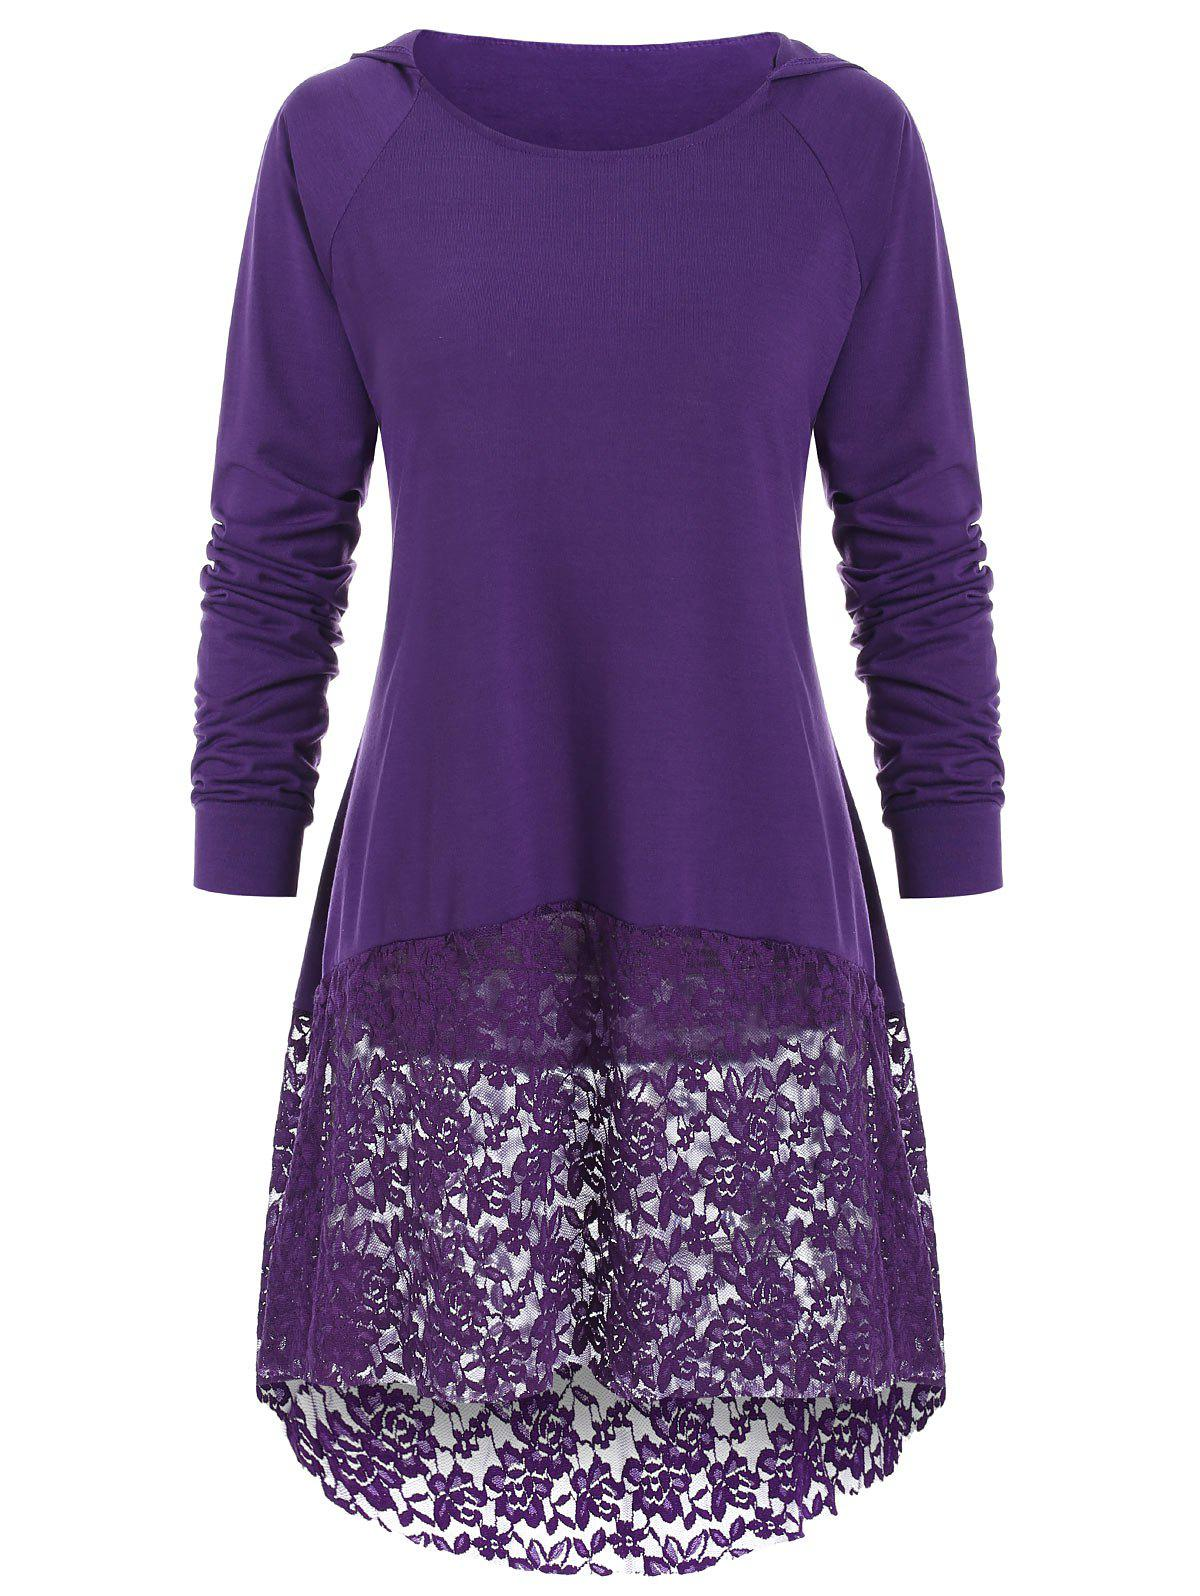 Store Round Neck Hooded Lace Insert Top